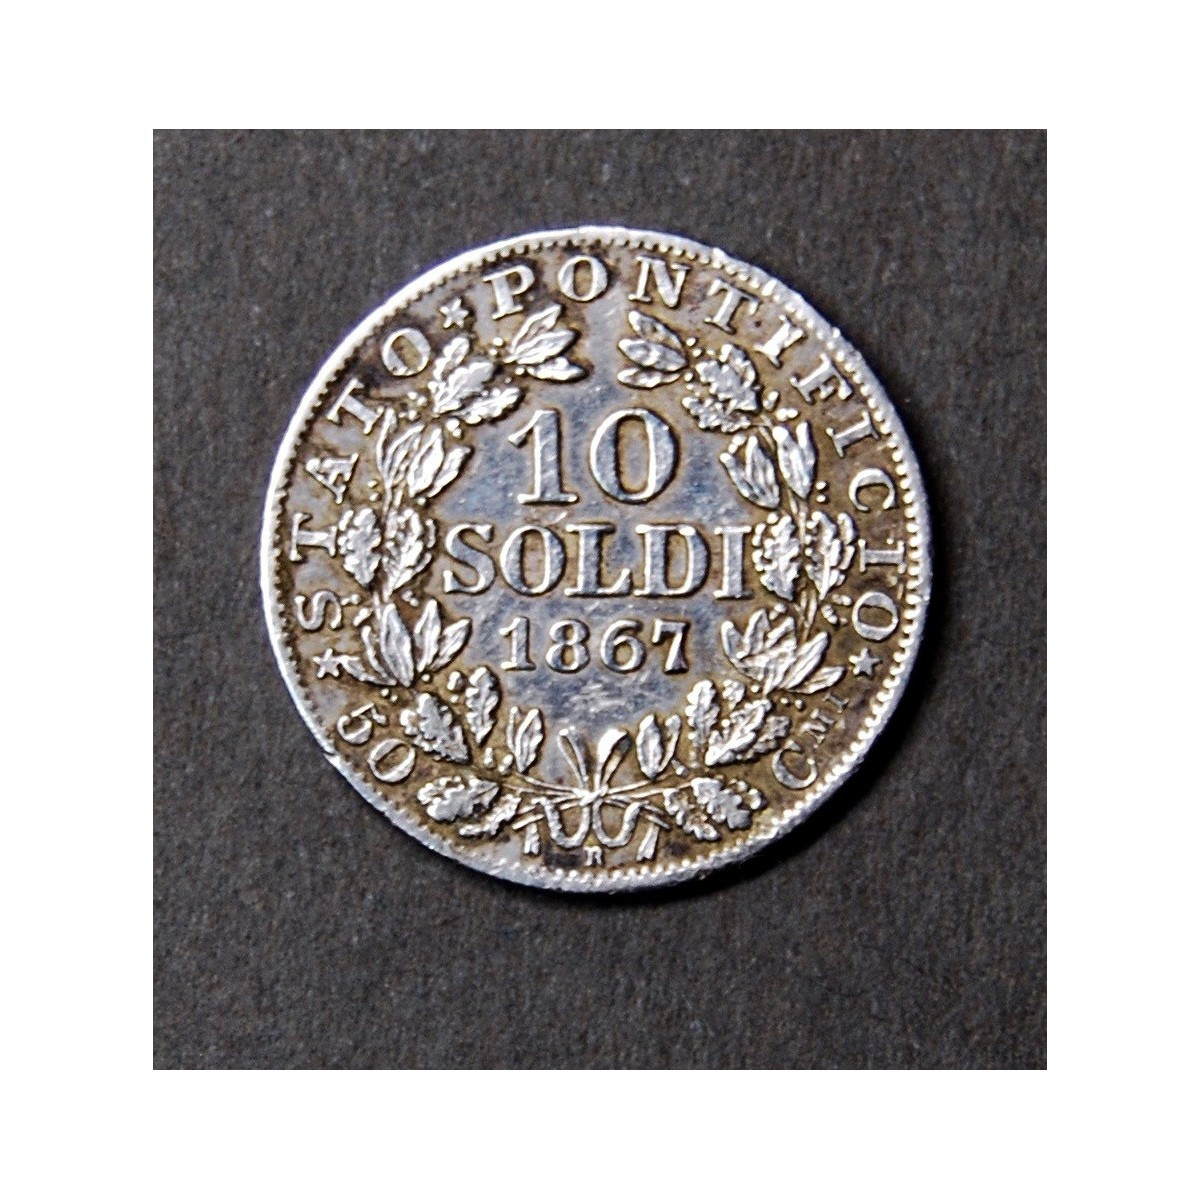 Coin of 10 soldi, 1867, pontifical state